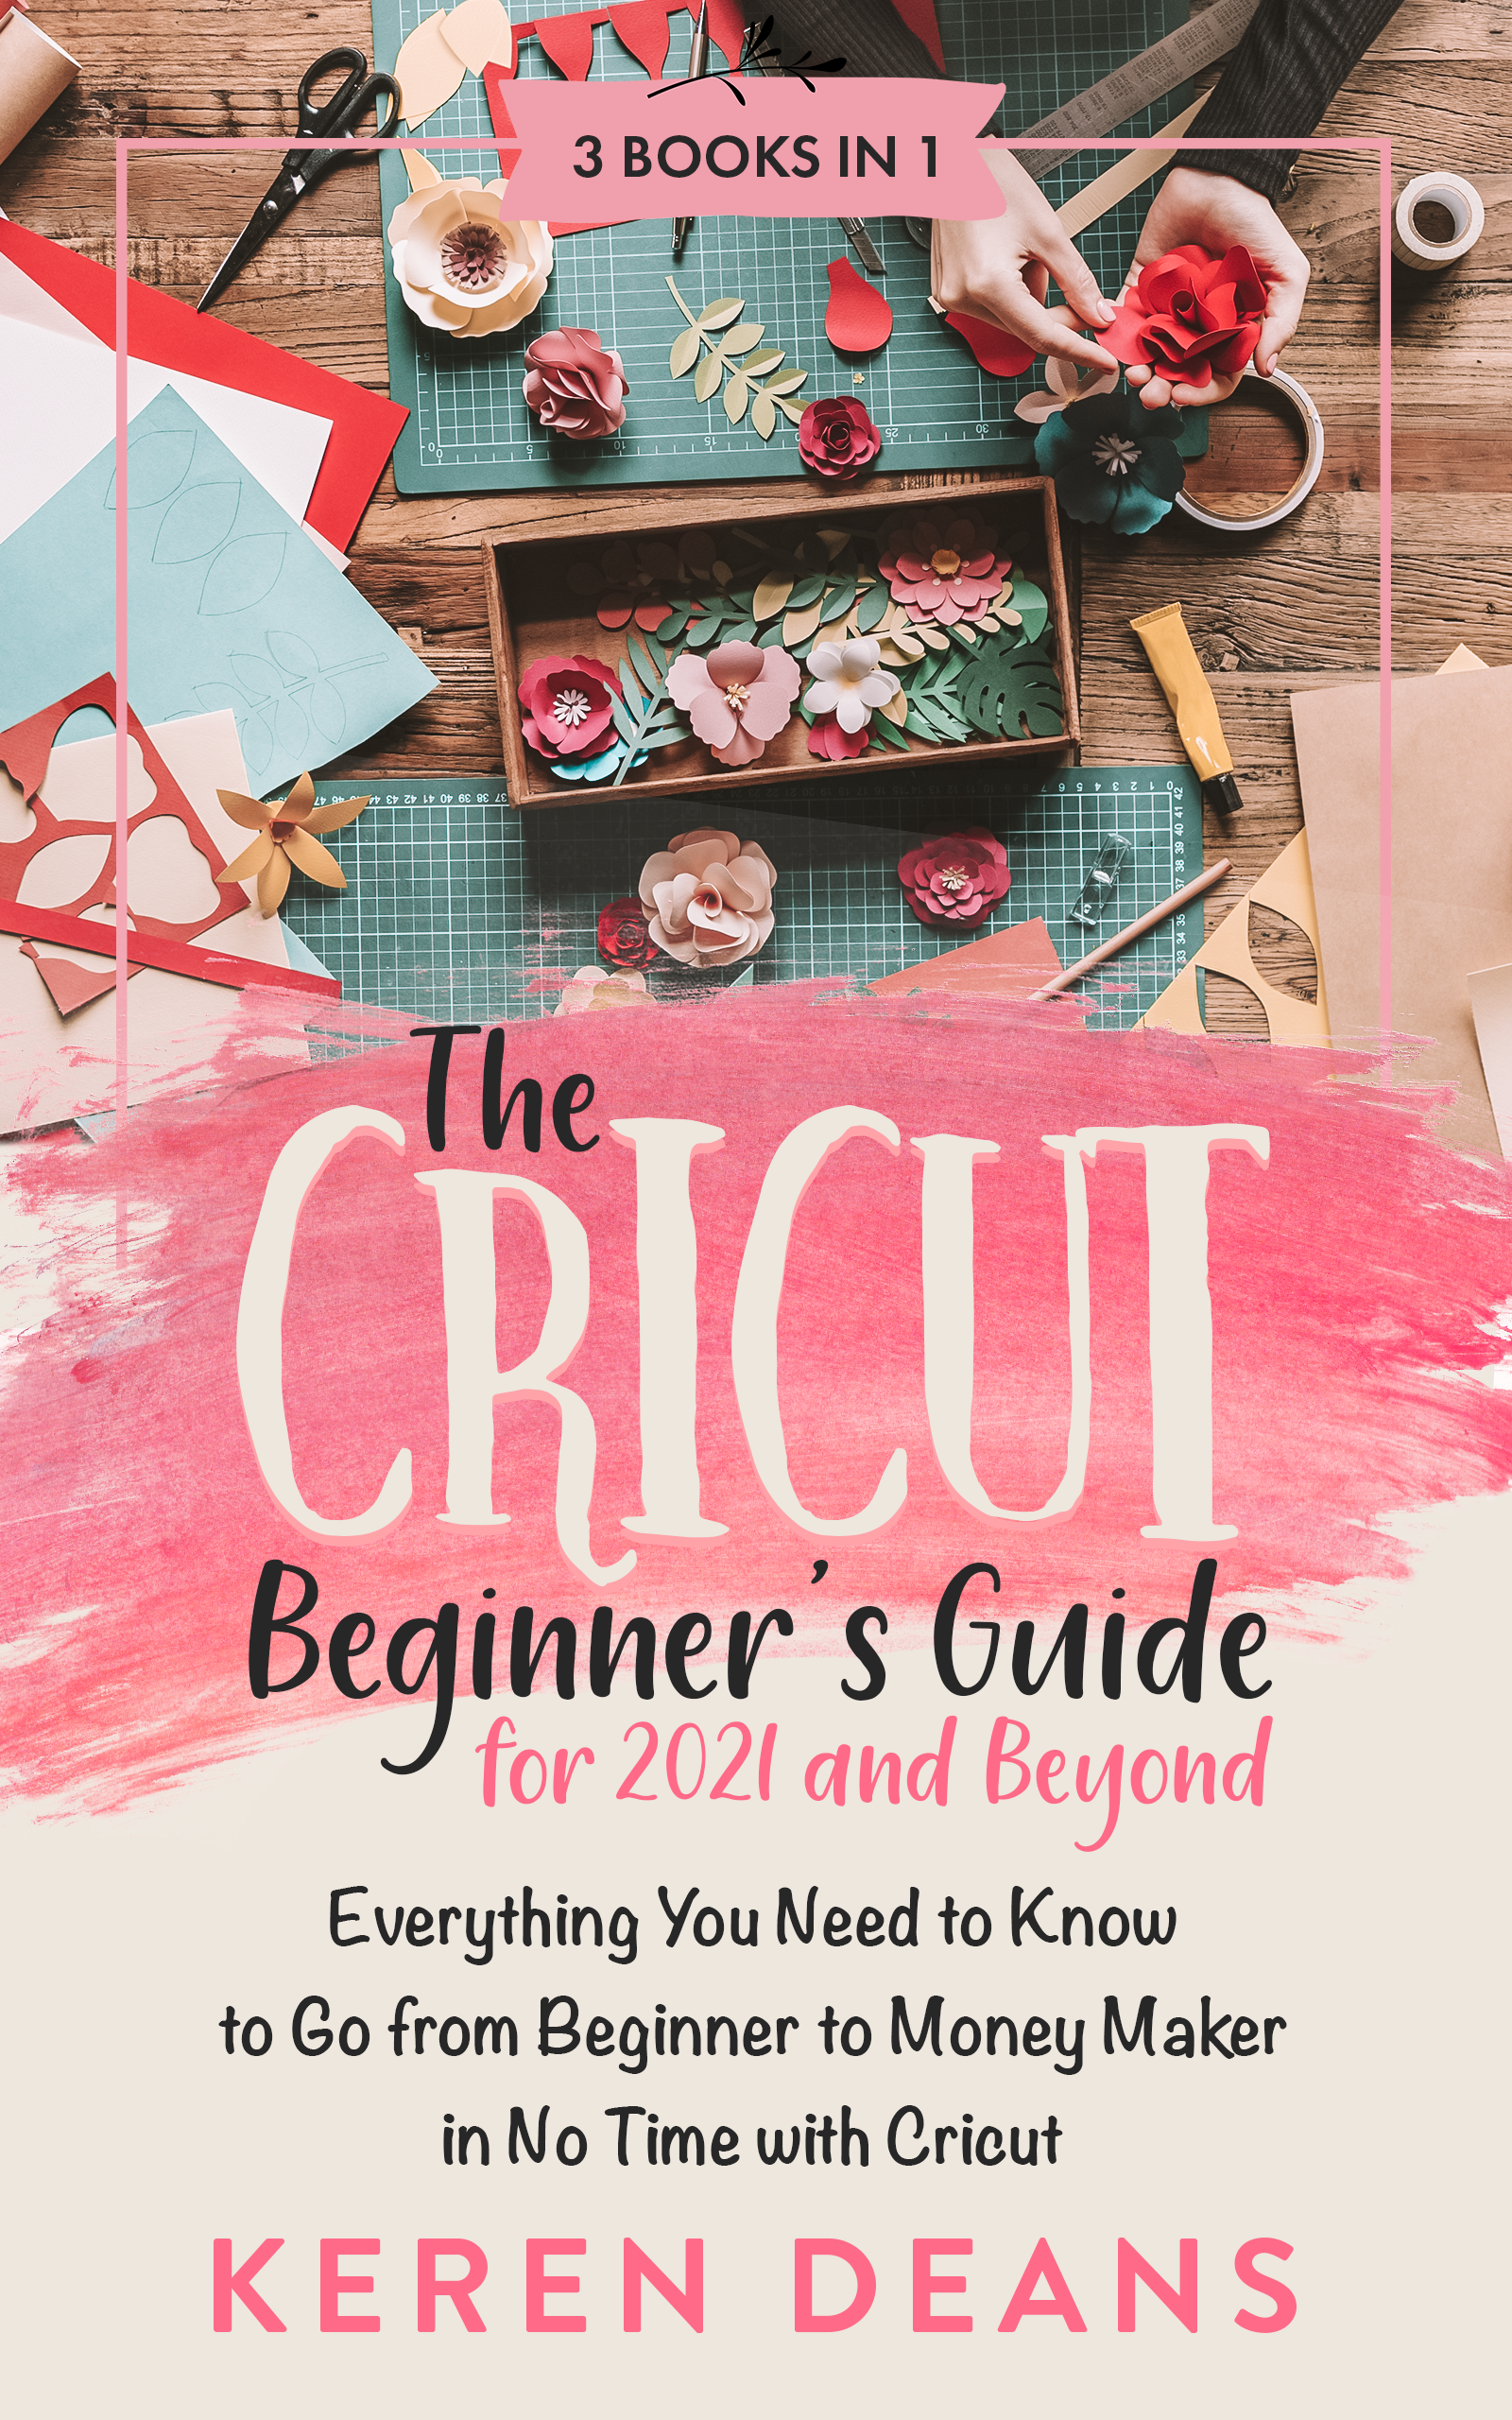 A  creative cover for a three book bundle about Cricut to appeal to American moms